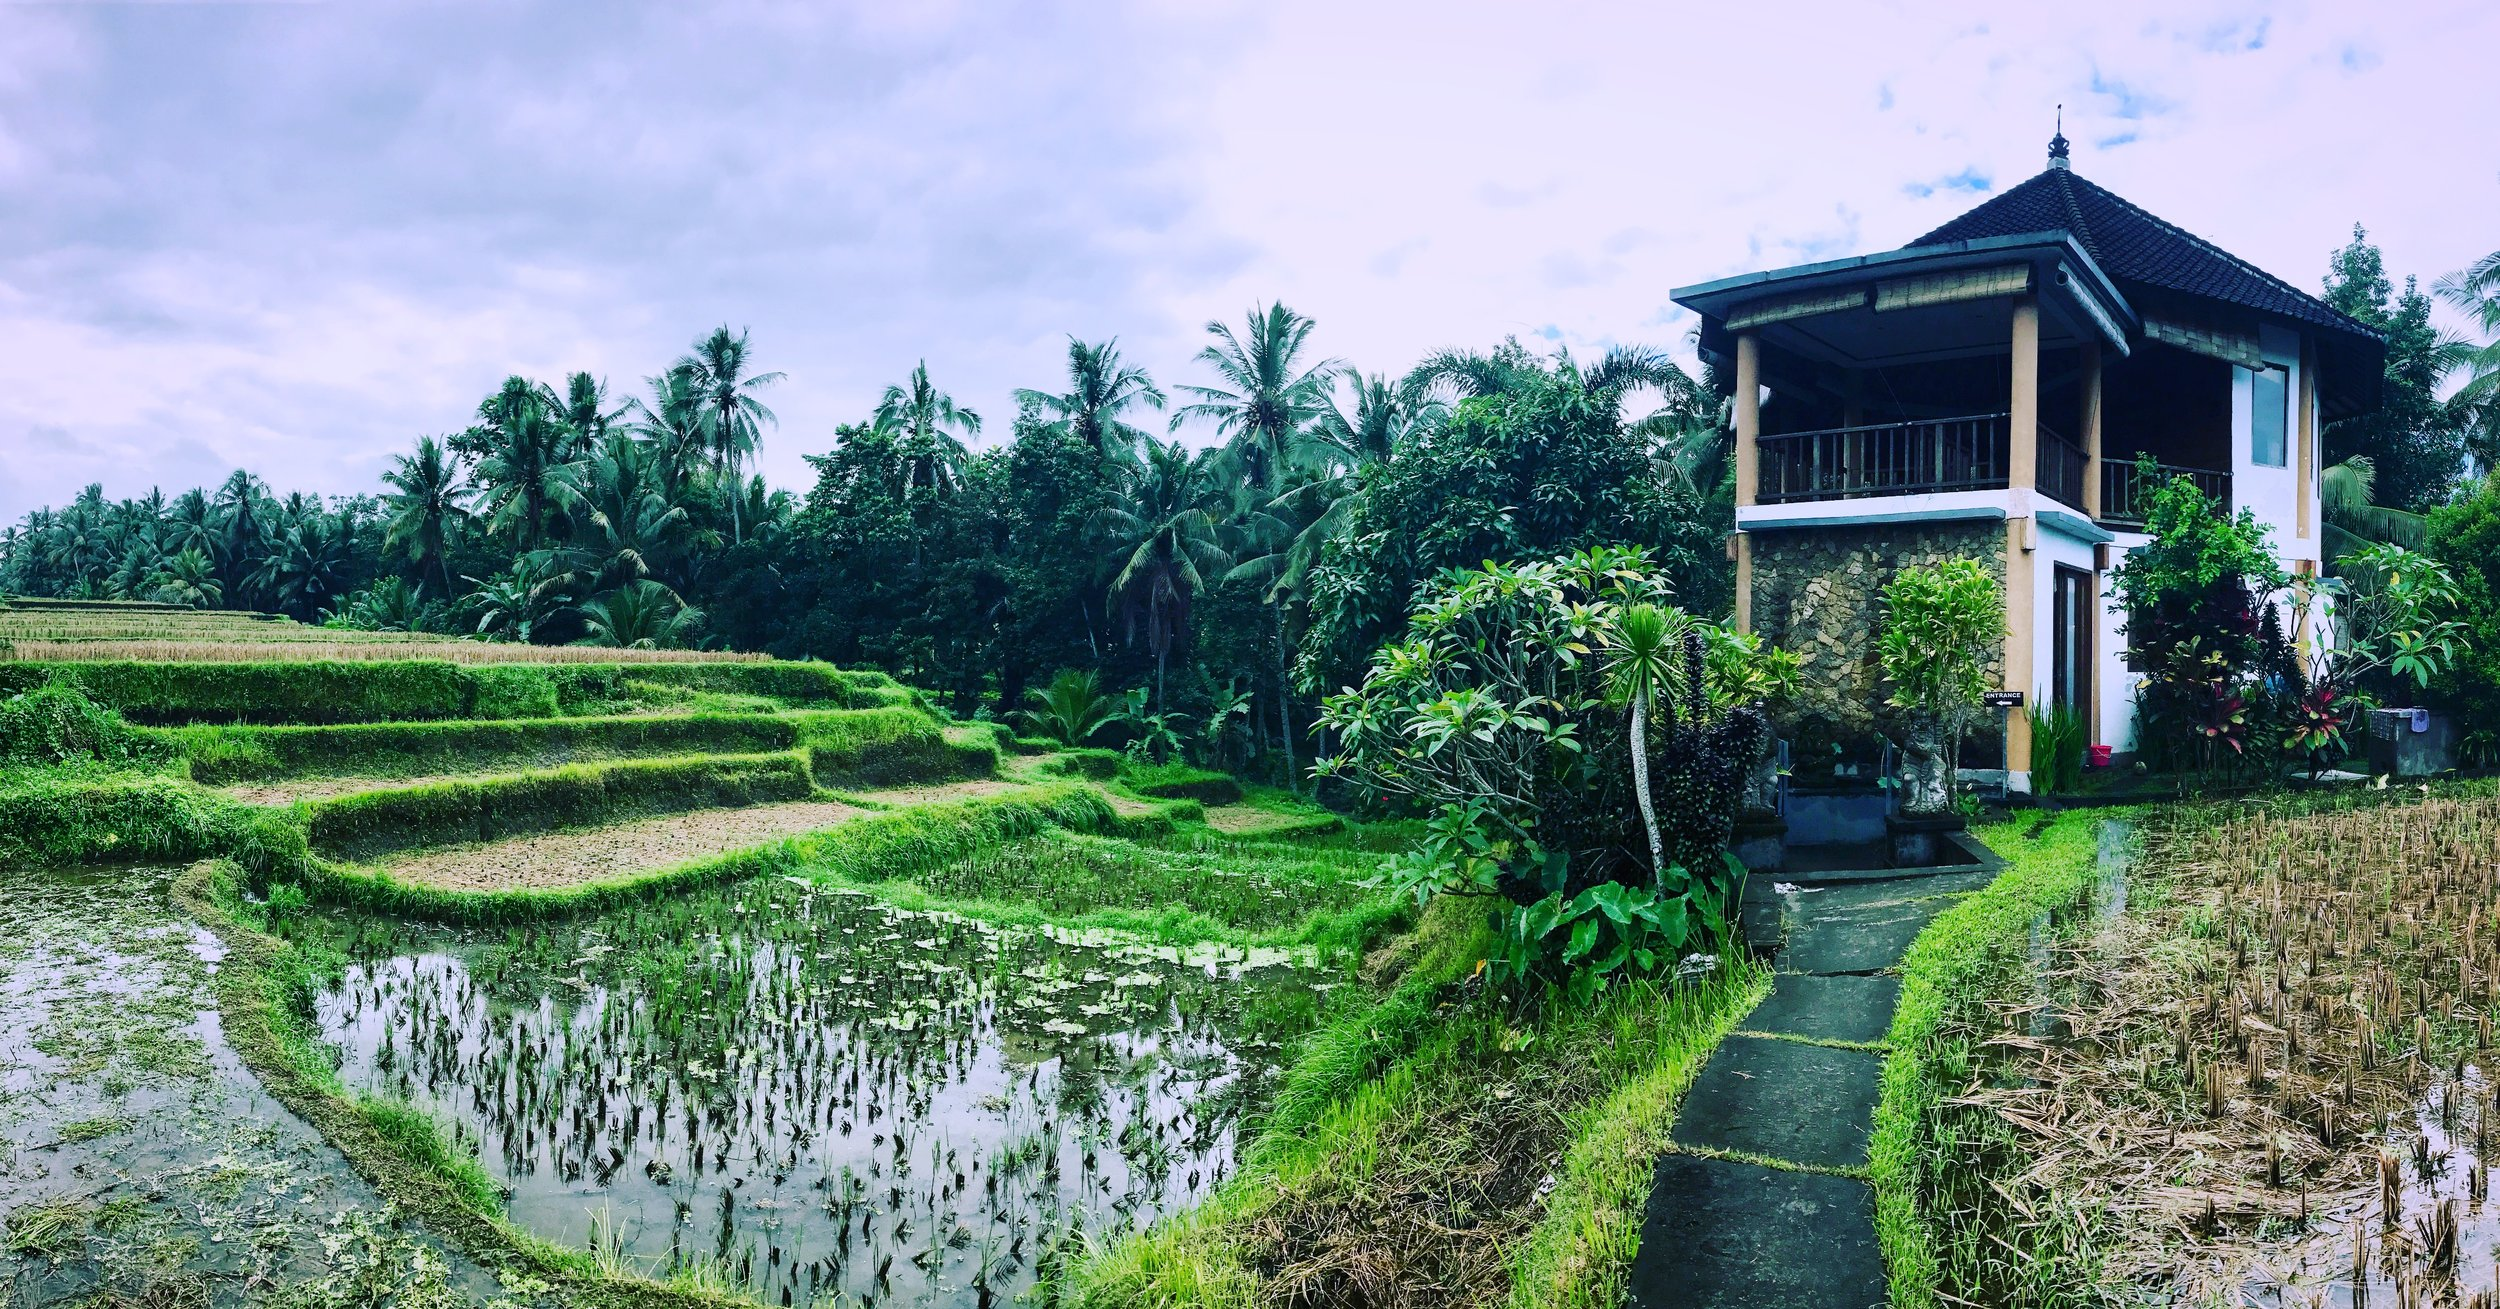 A pic of the Ubud Yoga House where we took our second yoga class -- It requires a 10 minute walk through rice paddies to get there, but so worth it!